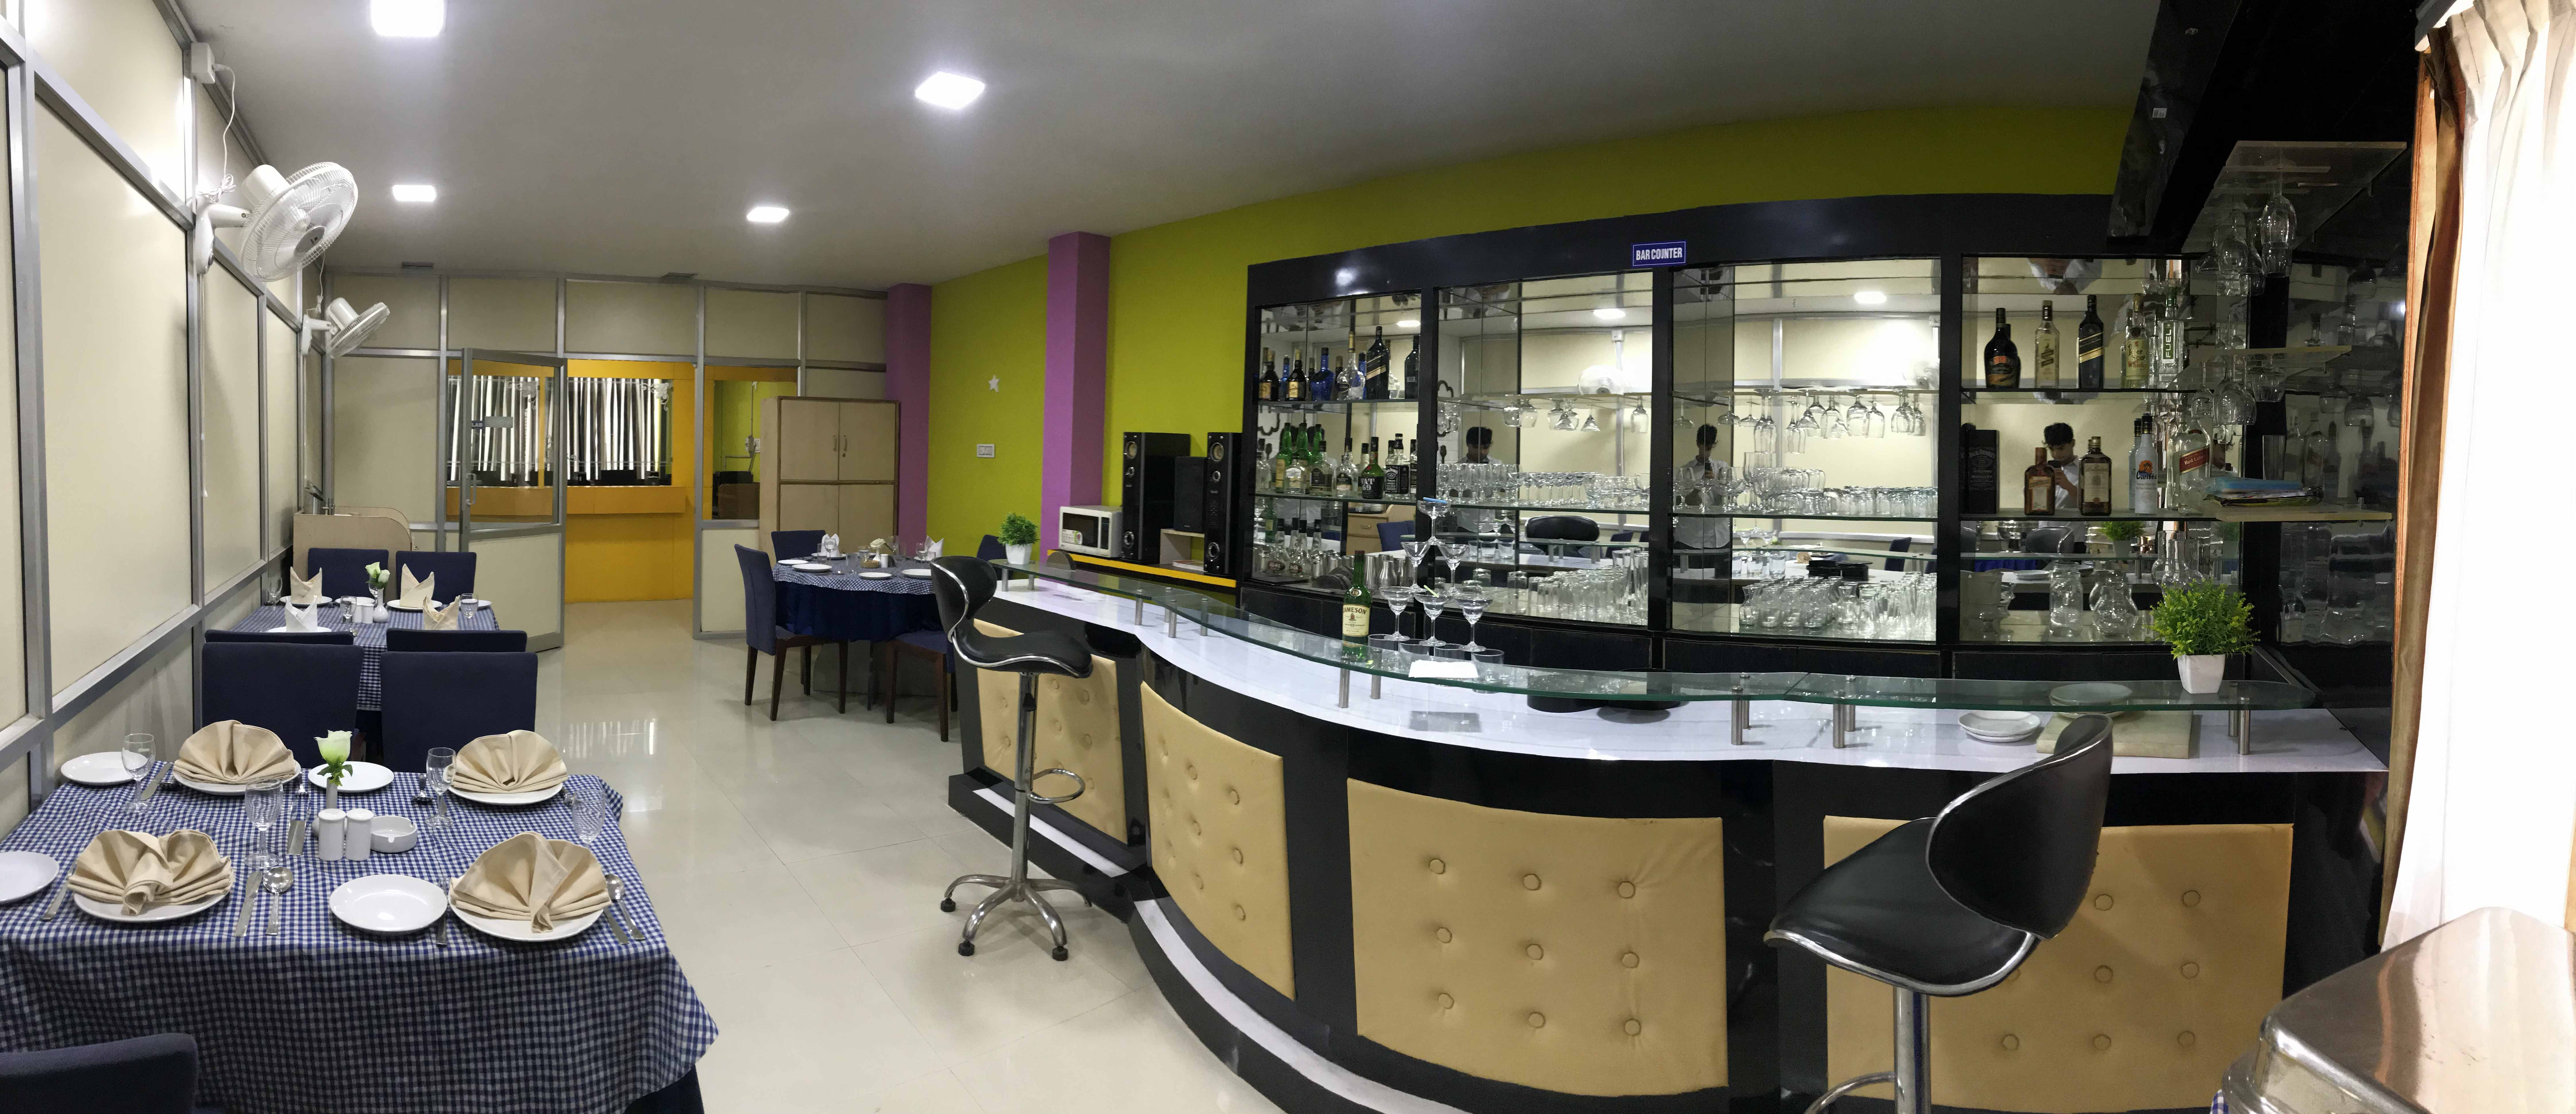 Bartending certification course in Hyderabad